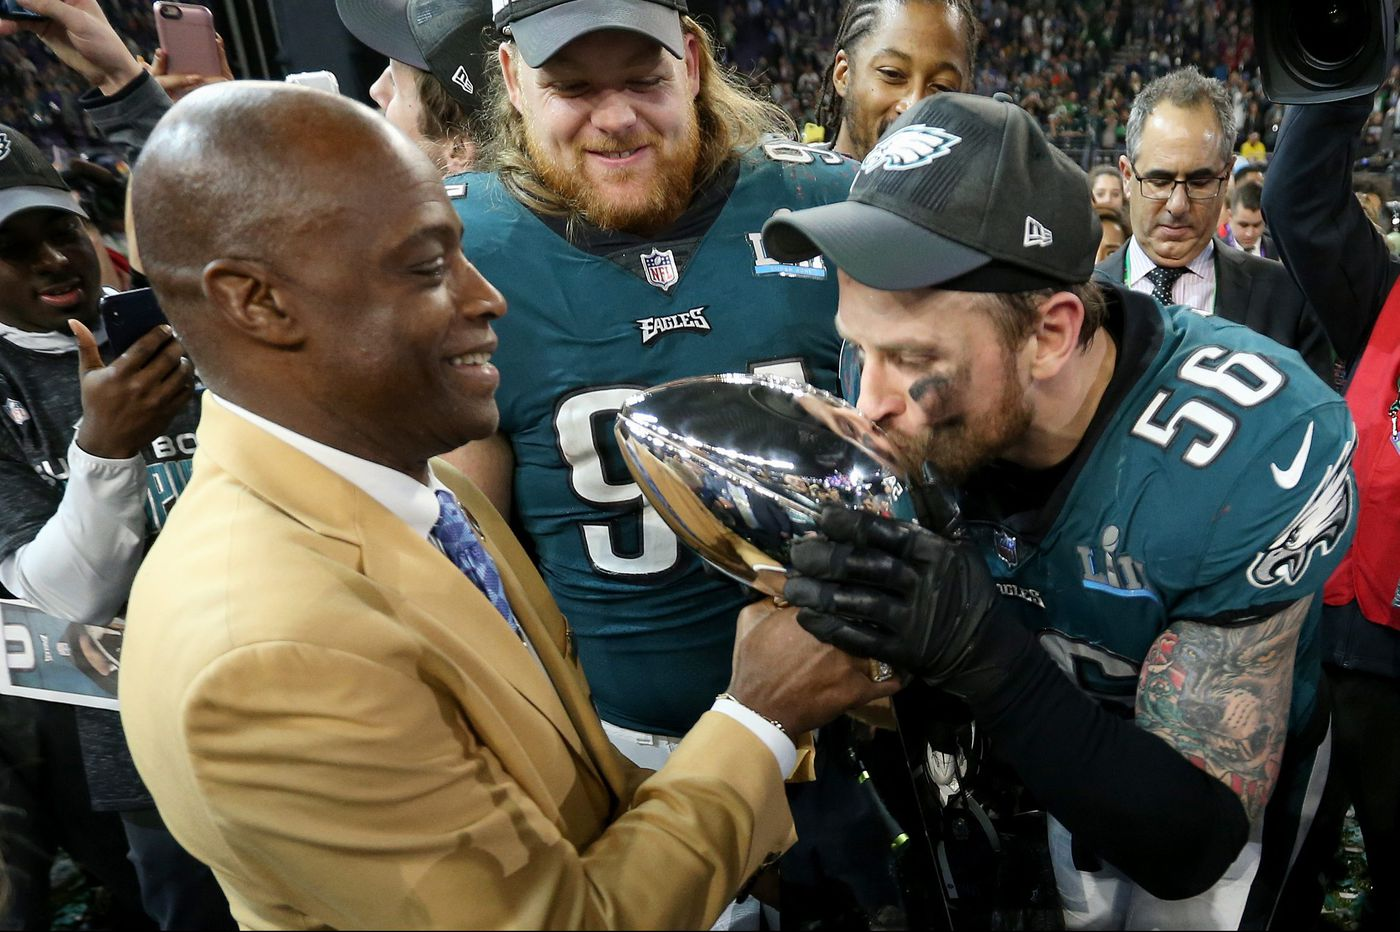 f9f2697a6 Eagles  Chris Long might not mention the Super Bowl when he sees his old  Patriots friends  No Alshon Jeffery update